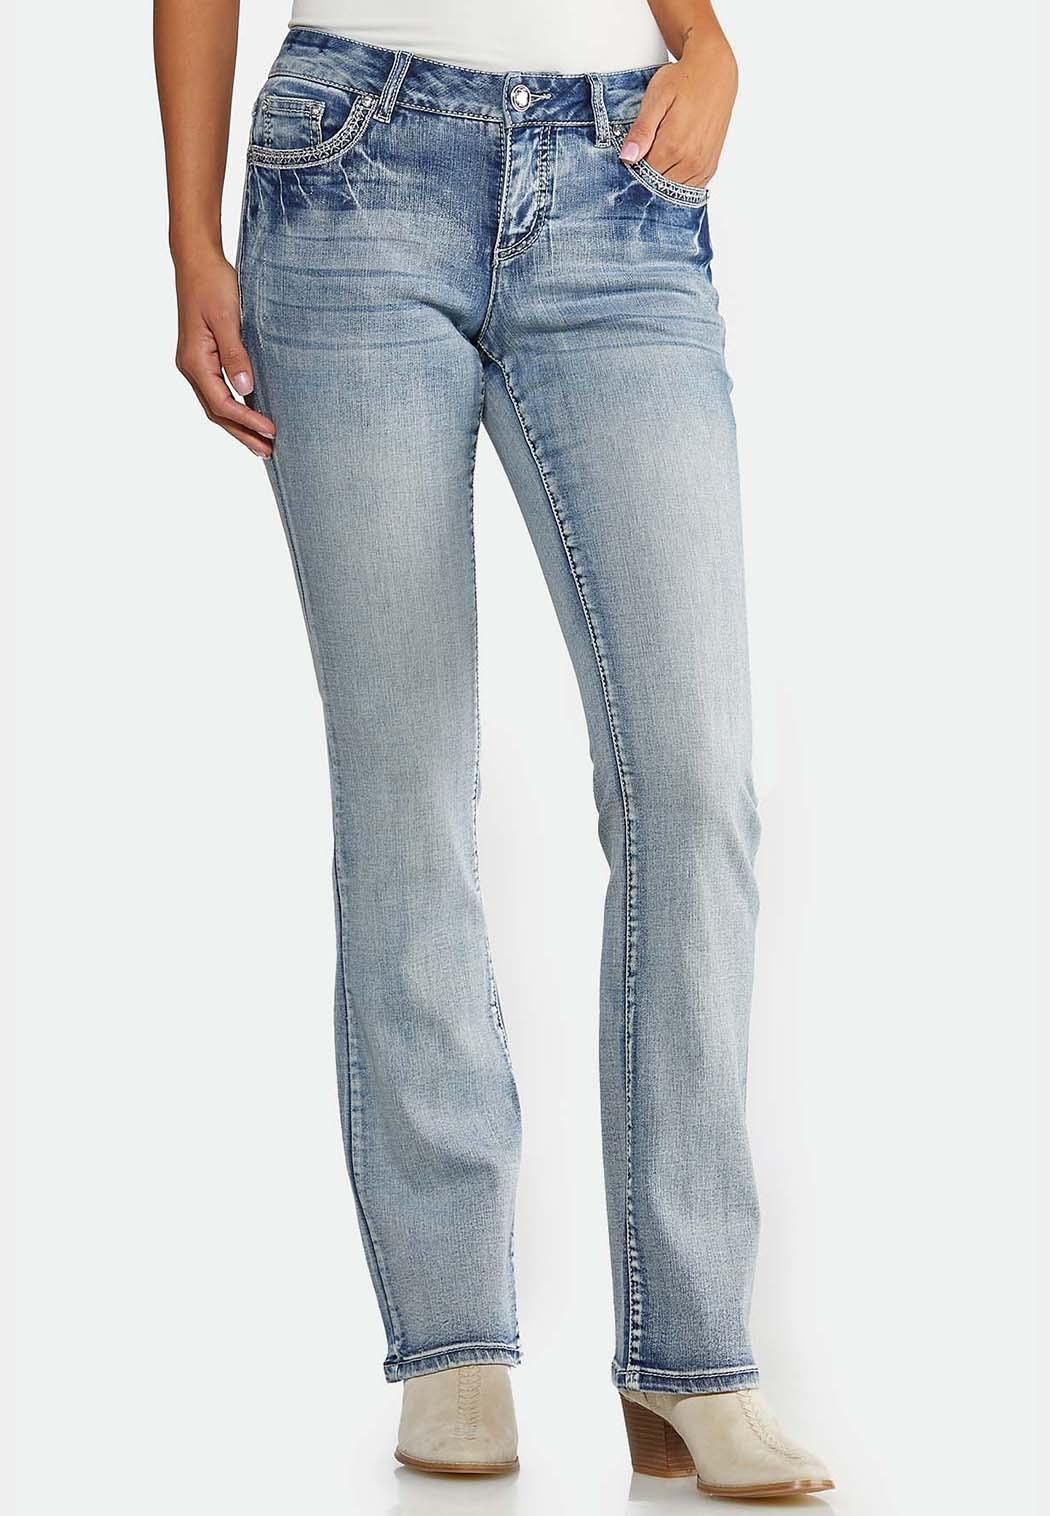 Petite Sparkling Embroidered Jeans (Item #43926297)